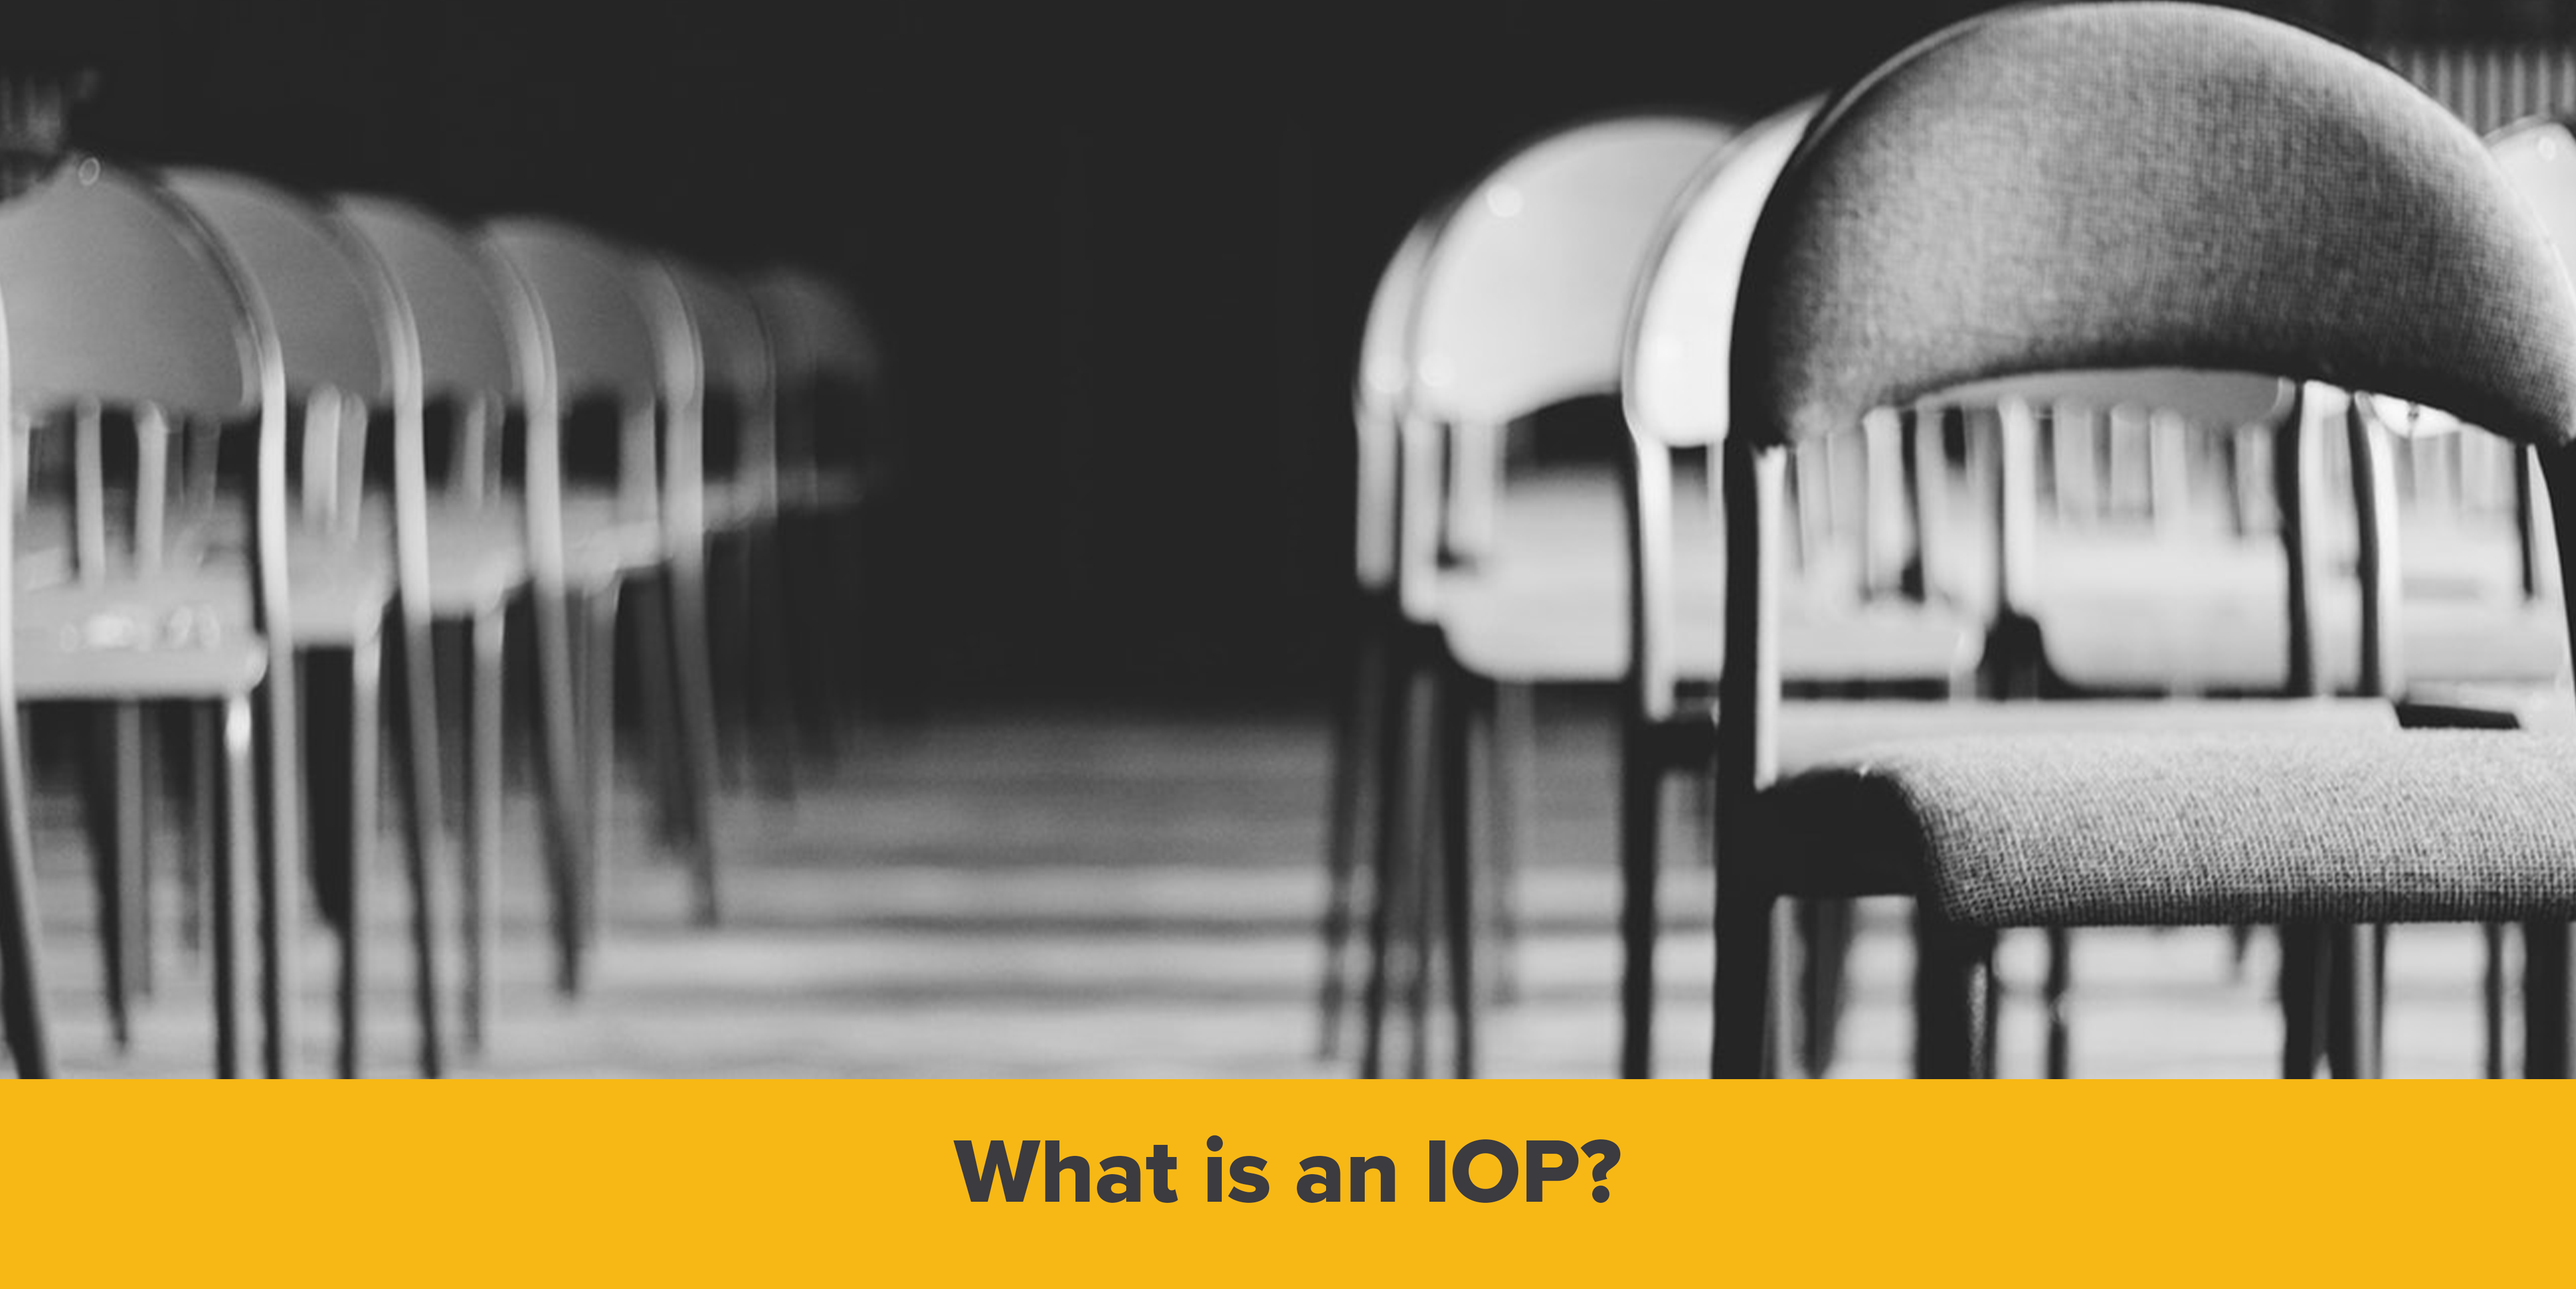 What is an IOP